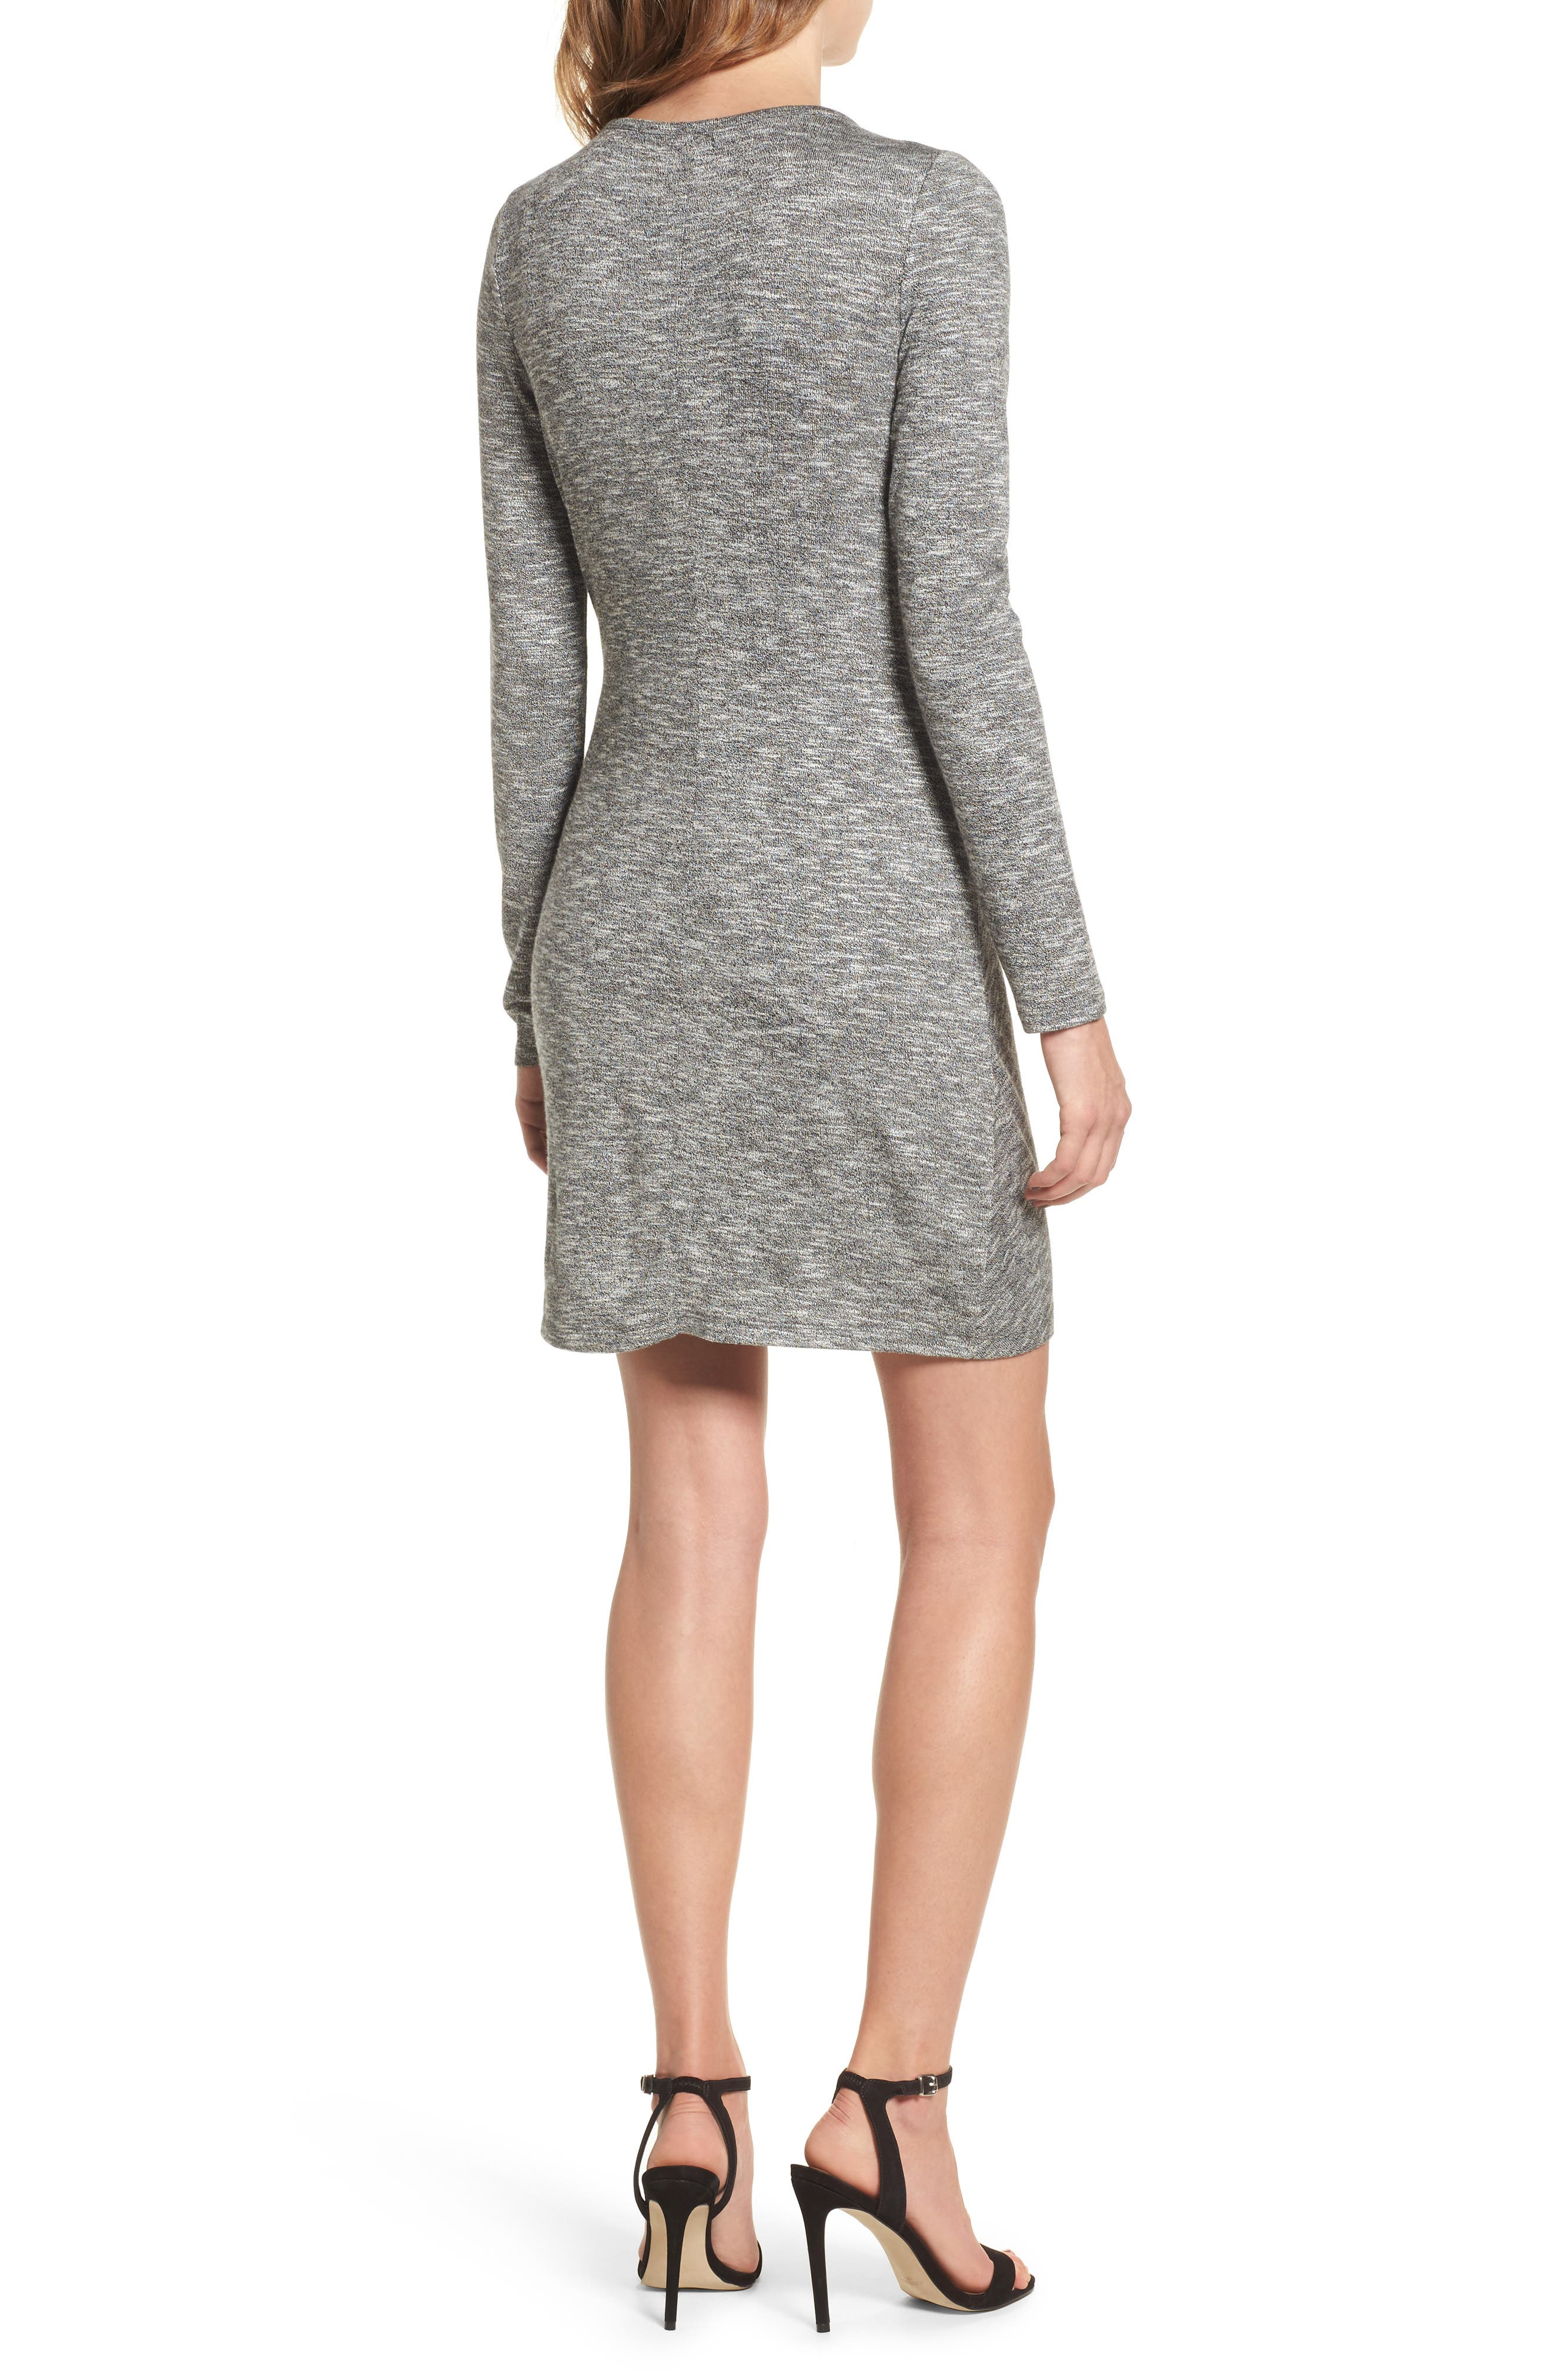 Ruched Knit Dress,                             Alternate thumbnail 2, color,                             020